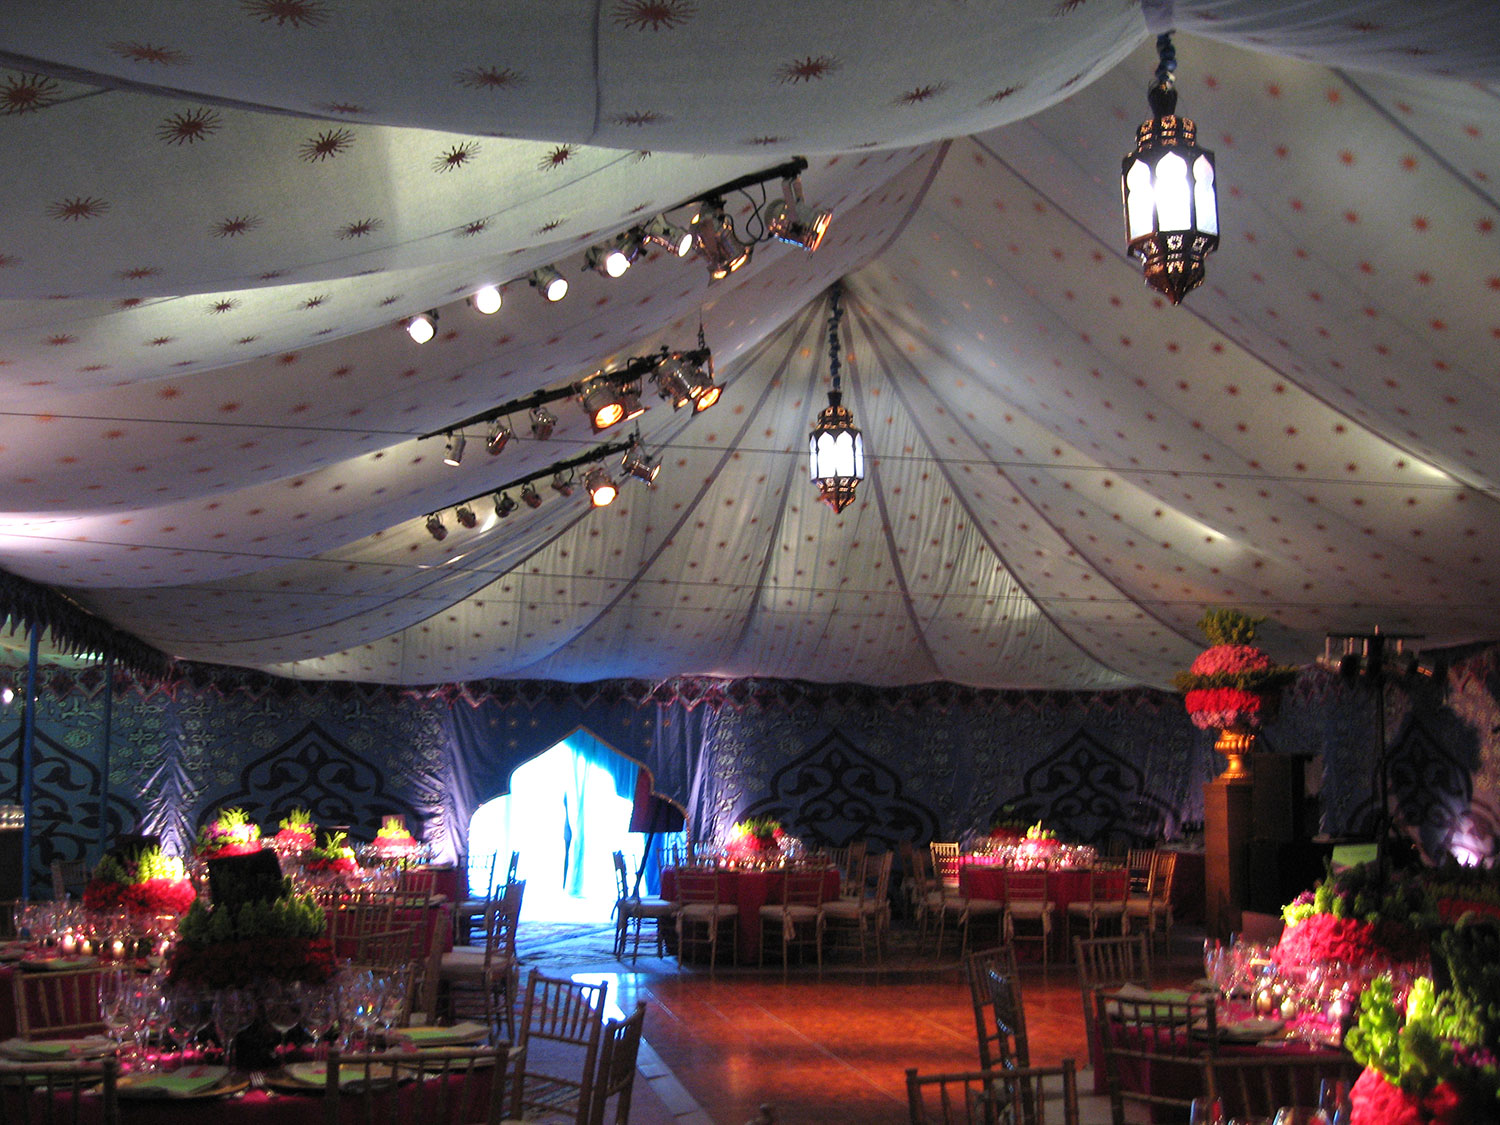 raj-tents-frame-tent-linings-dove-egg-arches.jpg